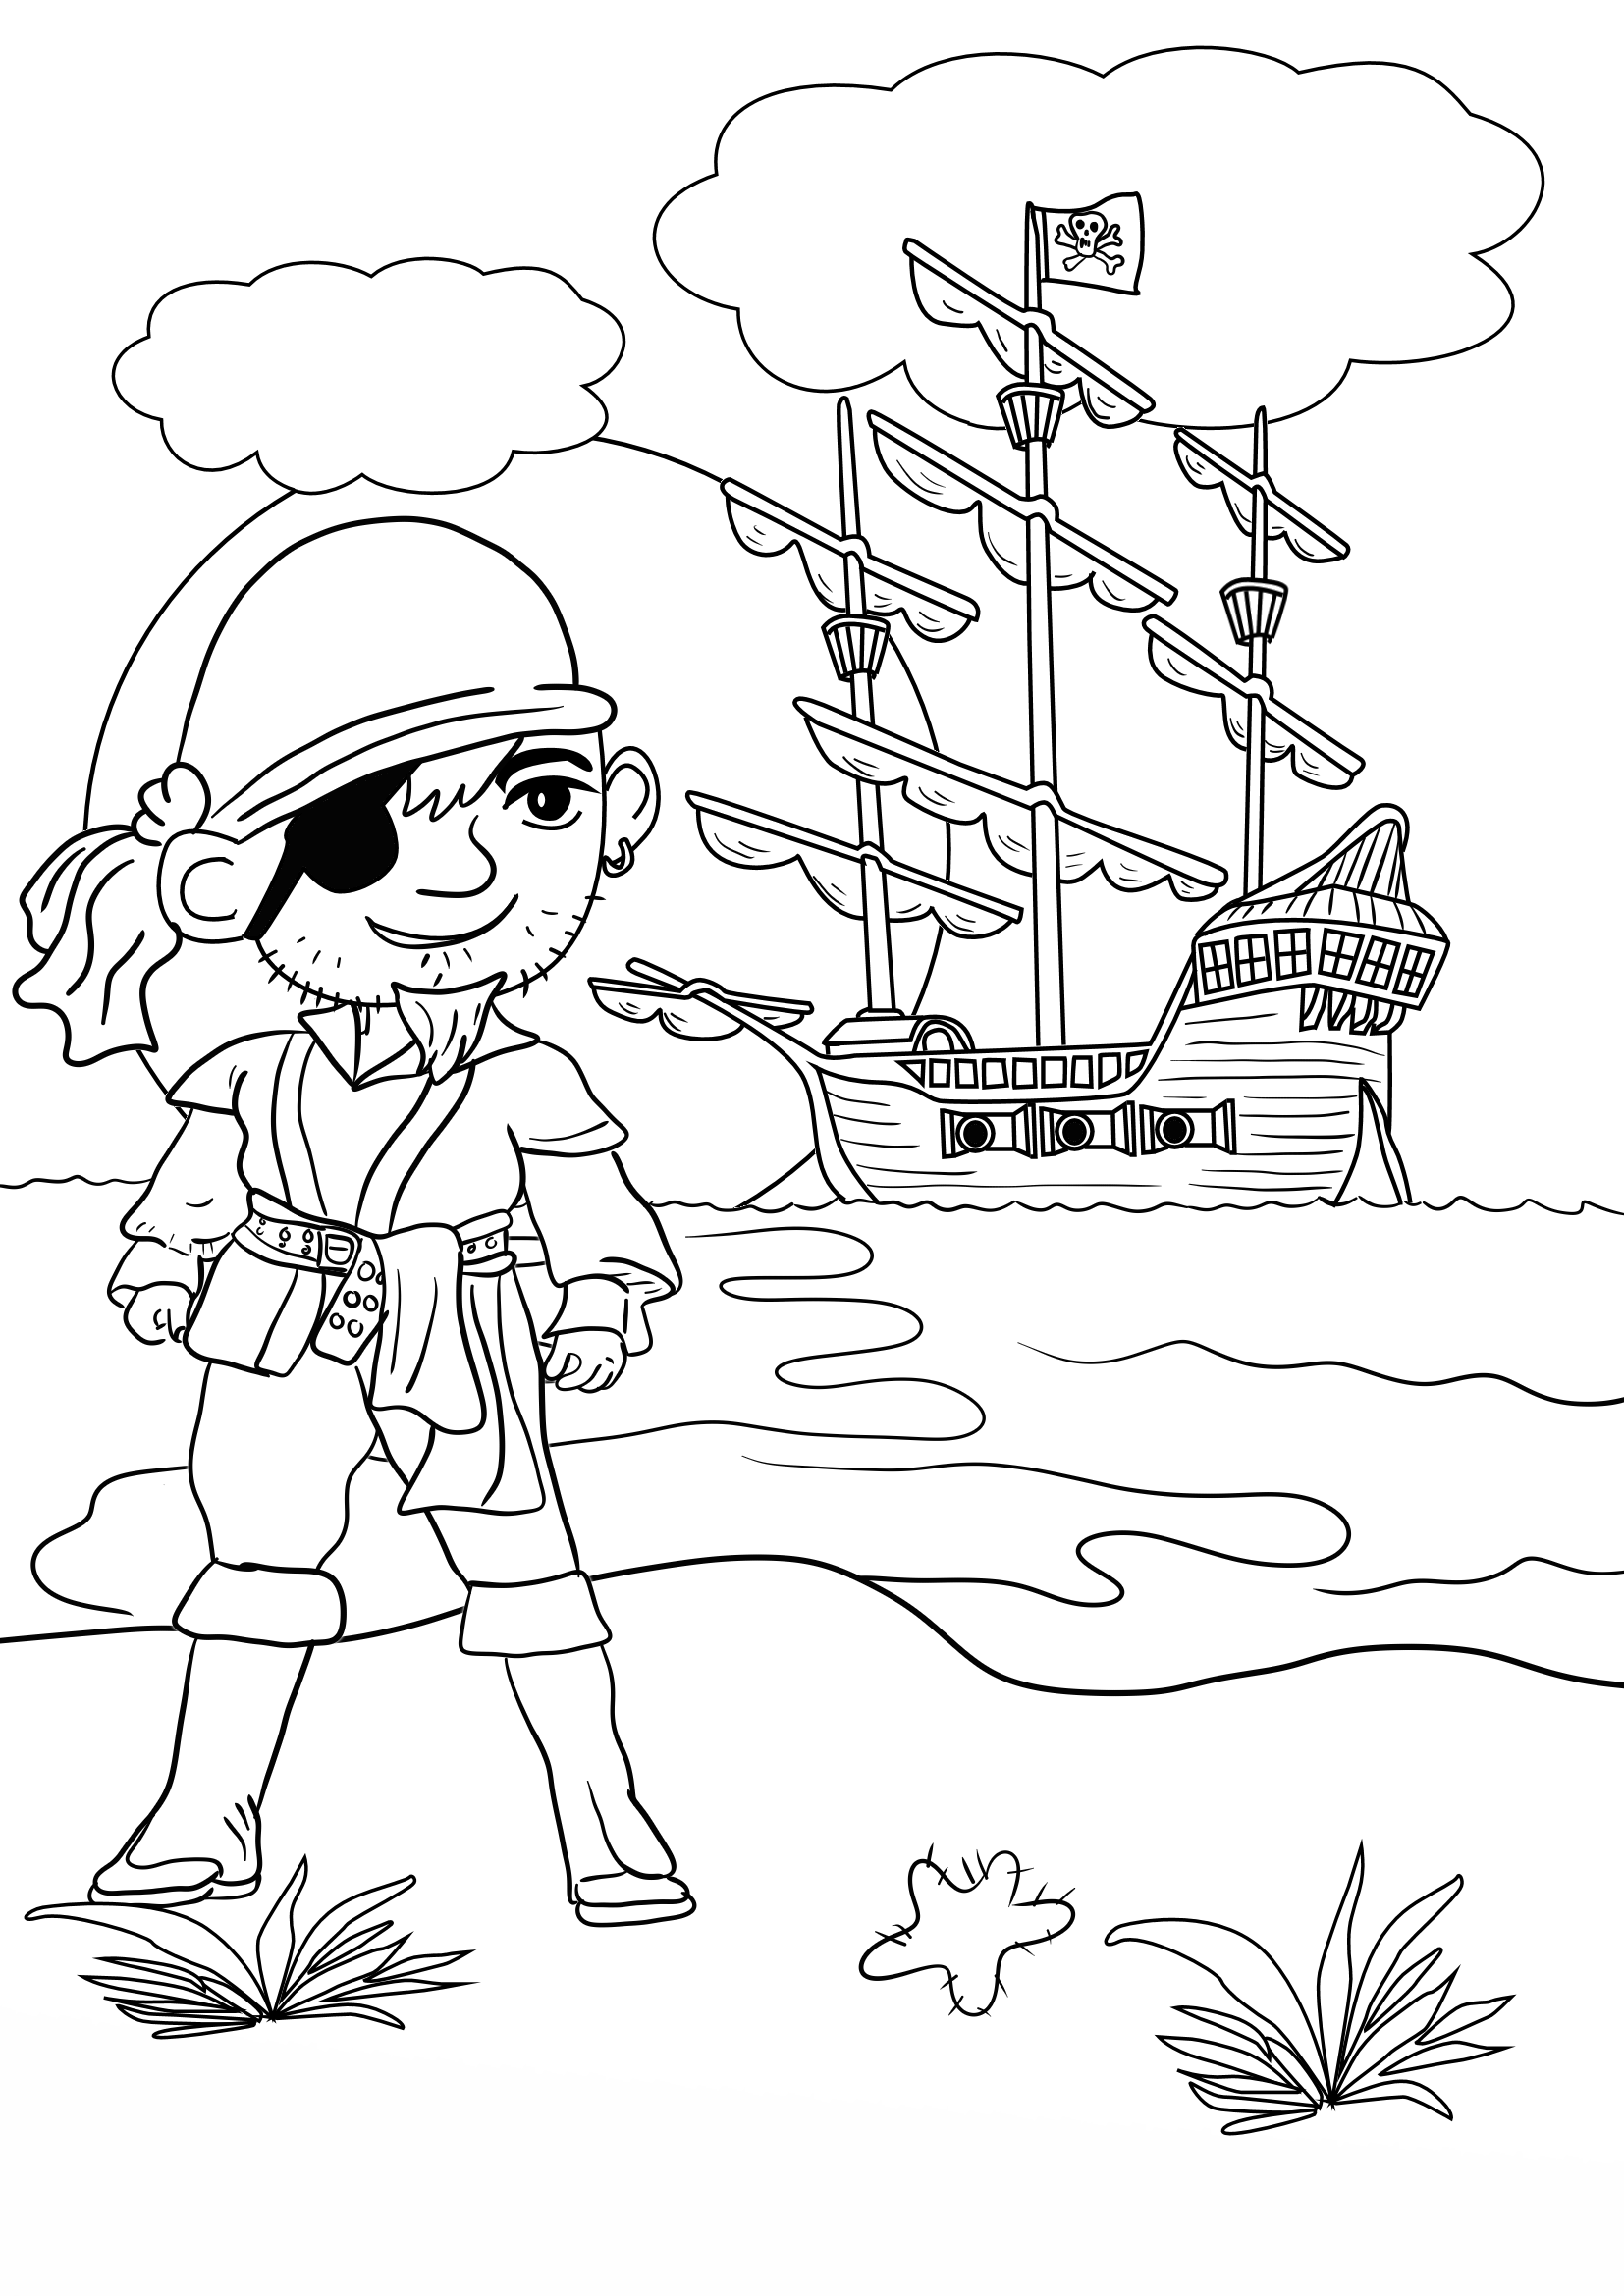 free colouring pages uk free printable colouring sheets sparklebox uk pages colouring free